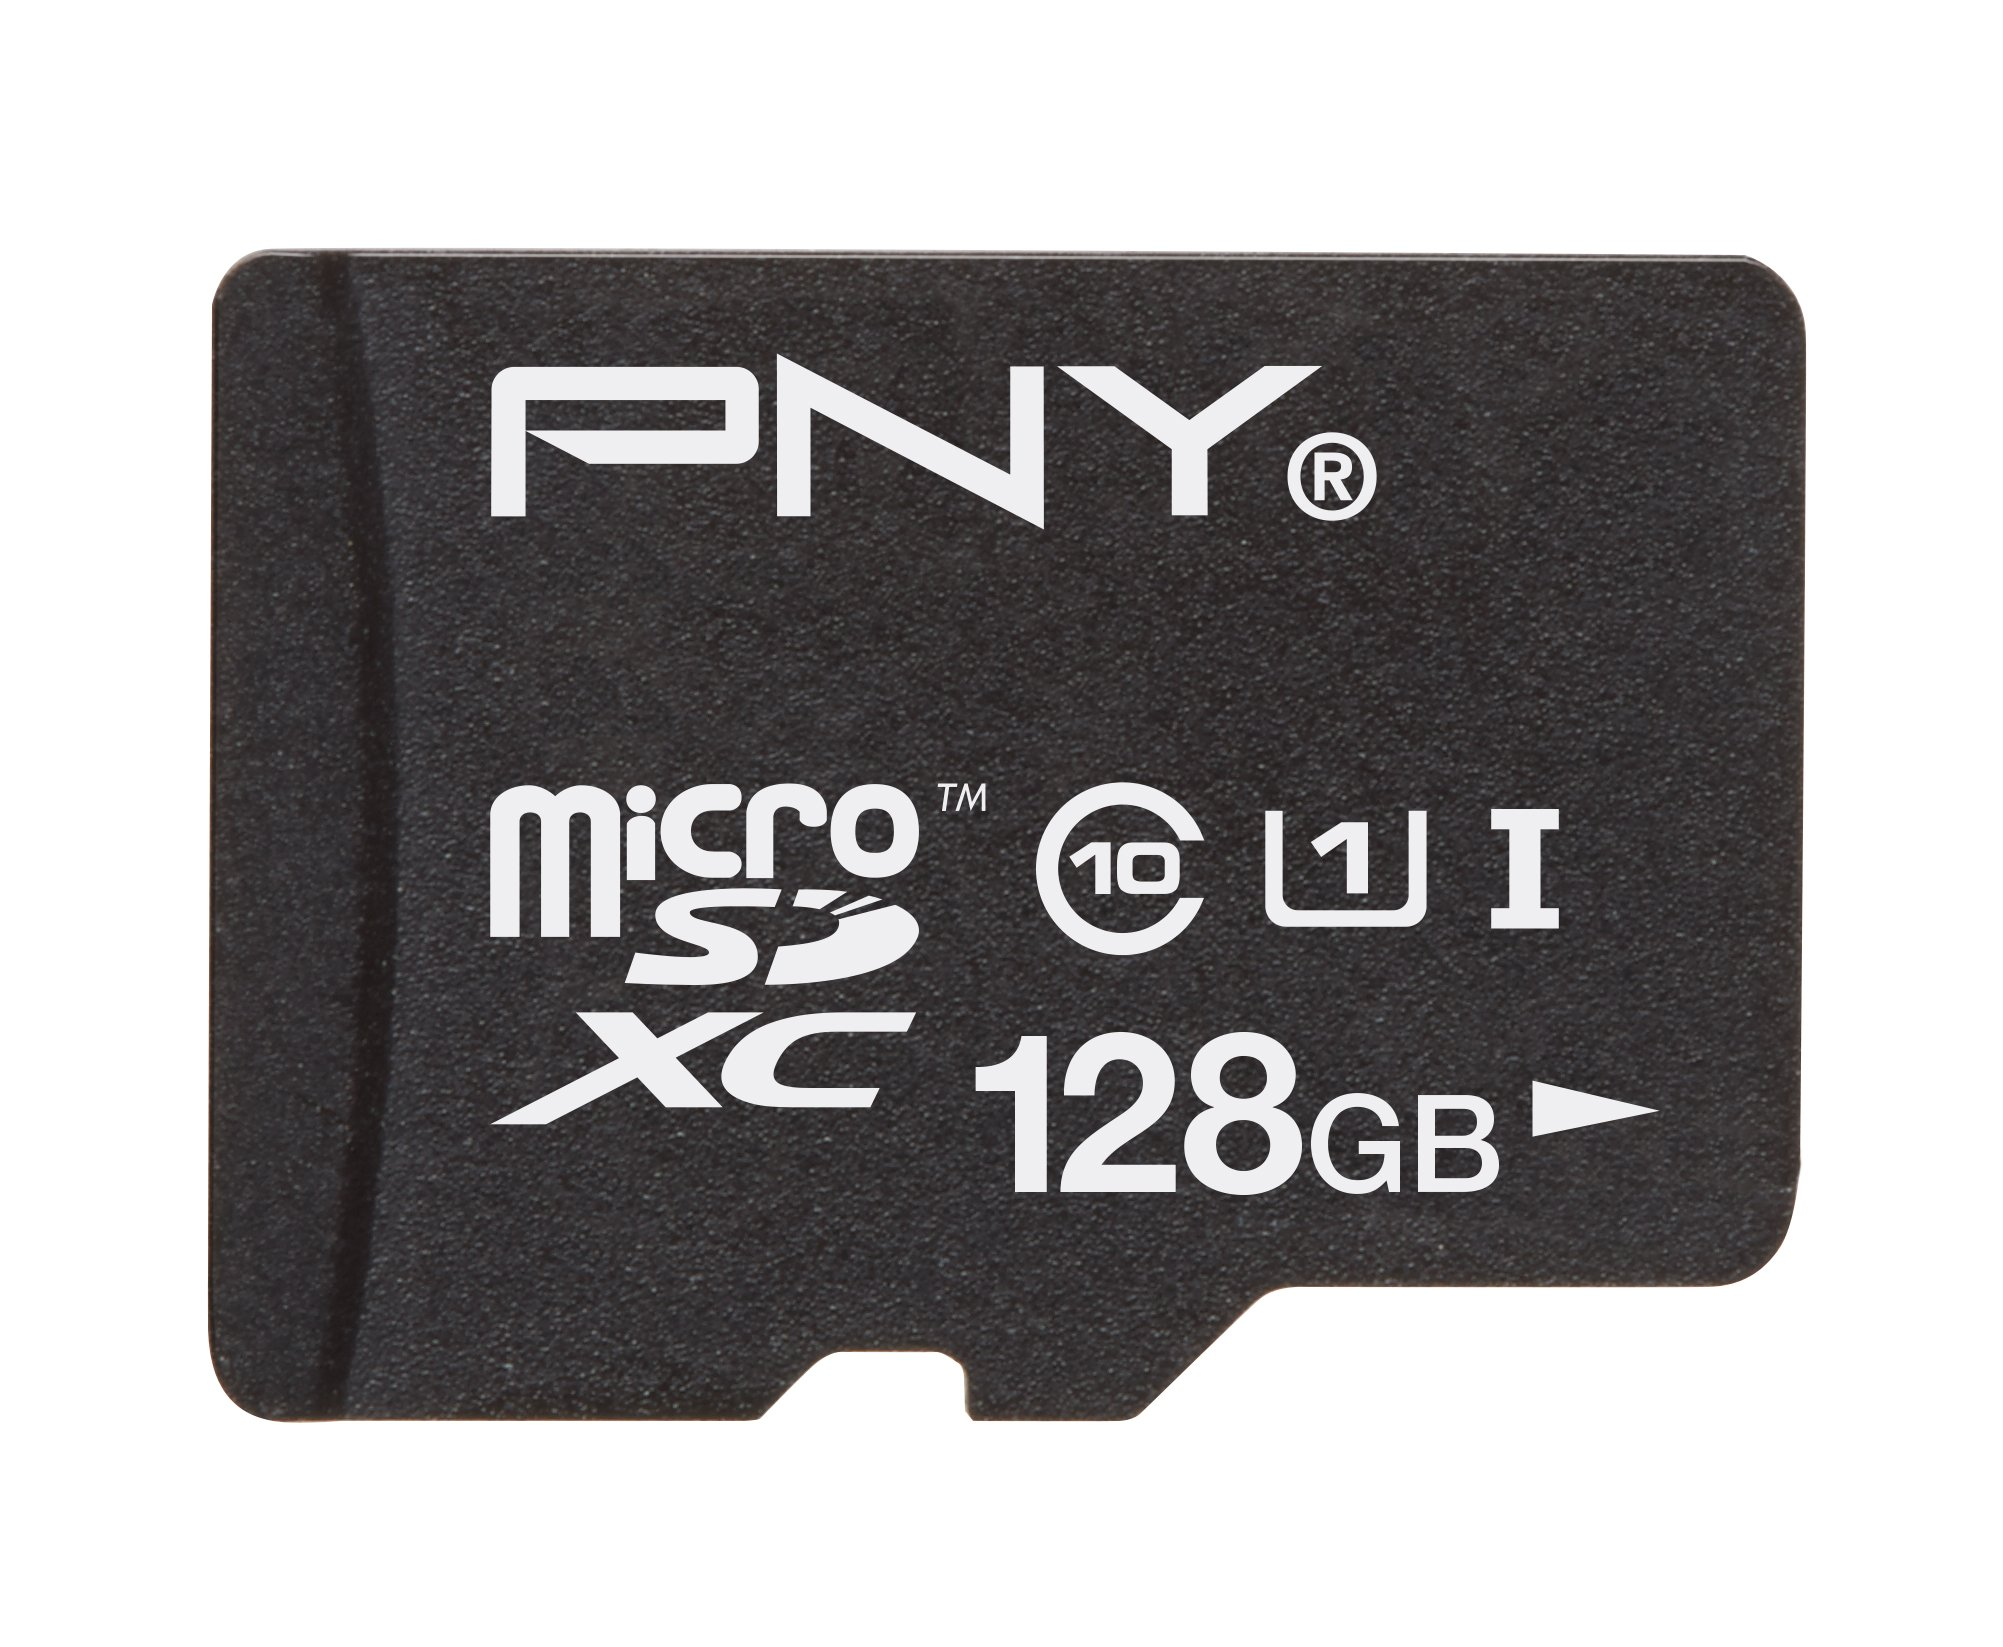 PNY High Performance 128GB High Speed microSDHC Class 10 UHS-1 up to 40MB/sec Flash Memory Card - P-SDUX128U1-GE (OLD MODEL)